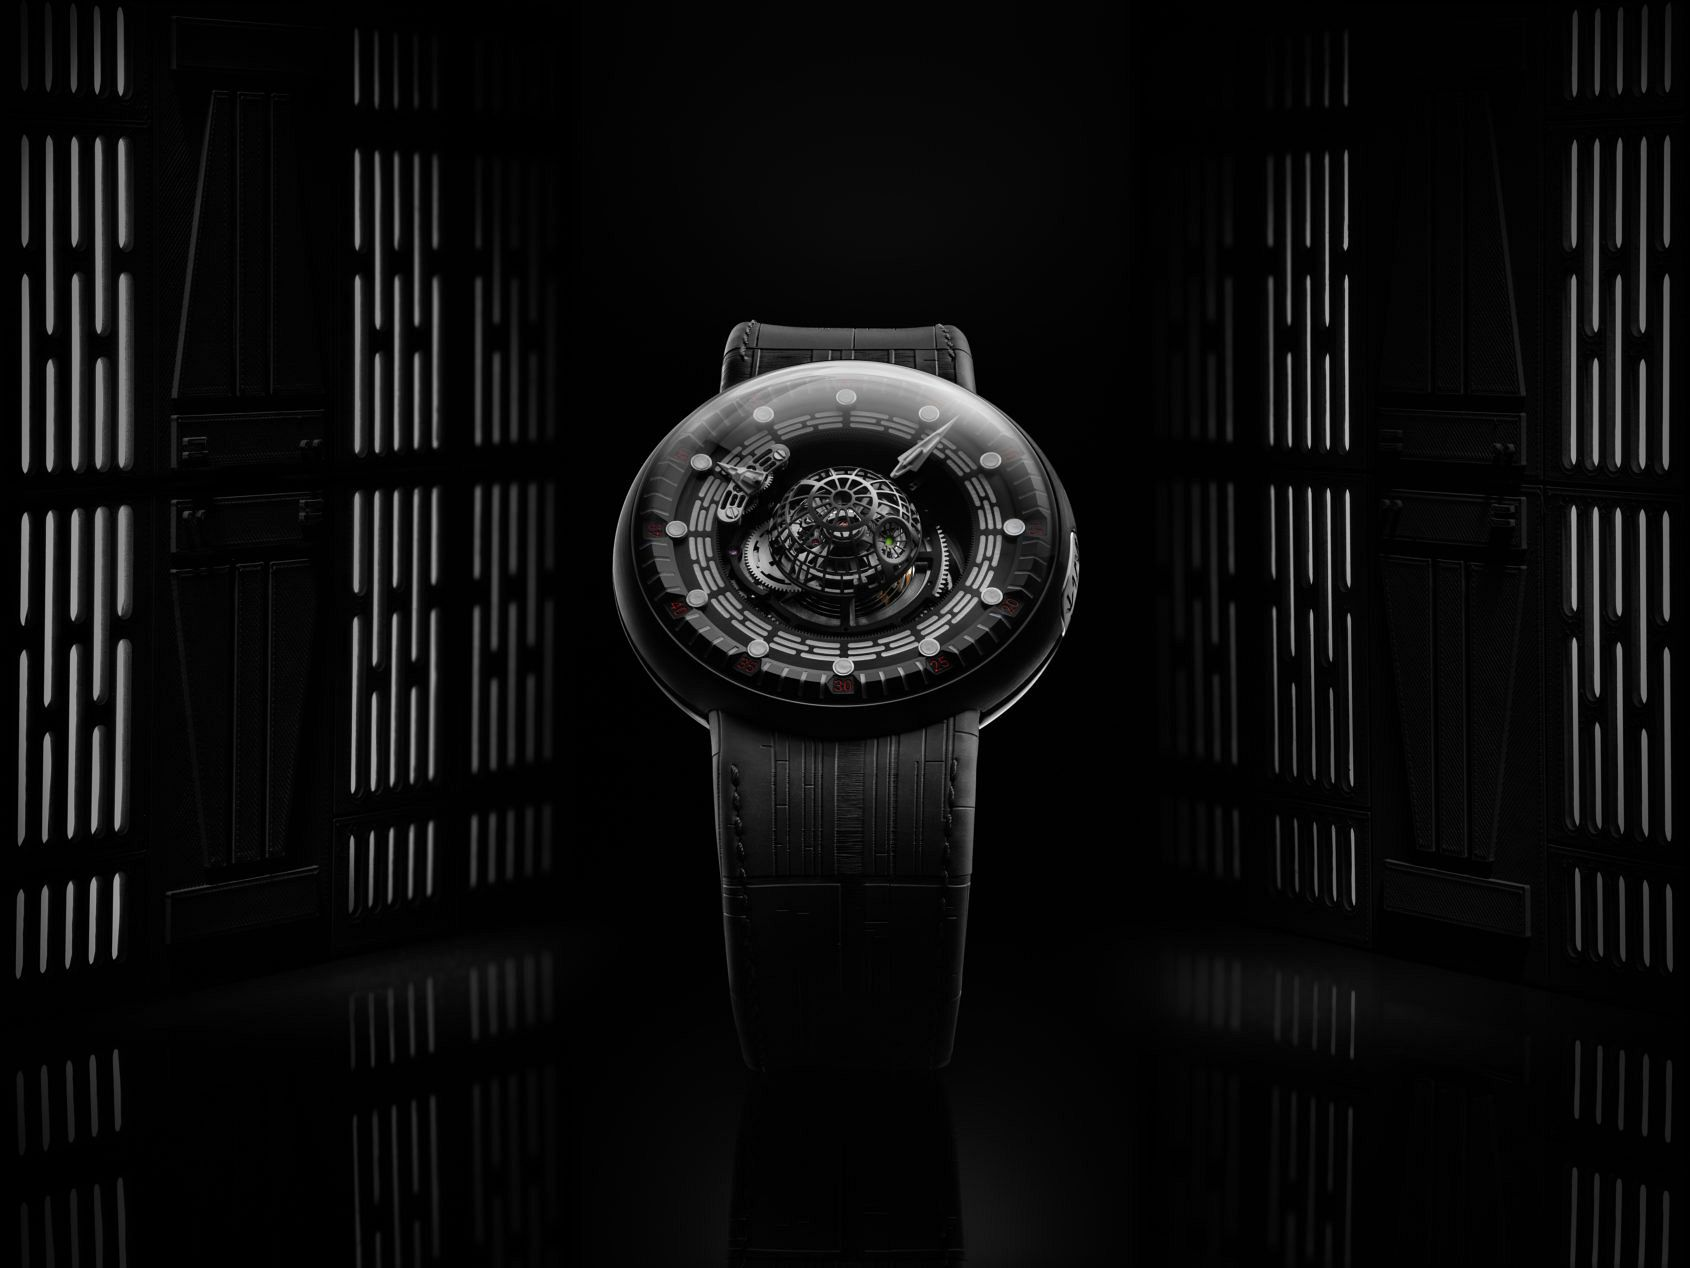 May the fourth be with you: Two Star Wars watches at opposite ends of the pricing spectrum